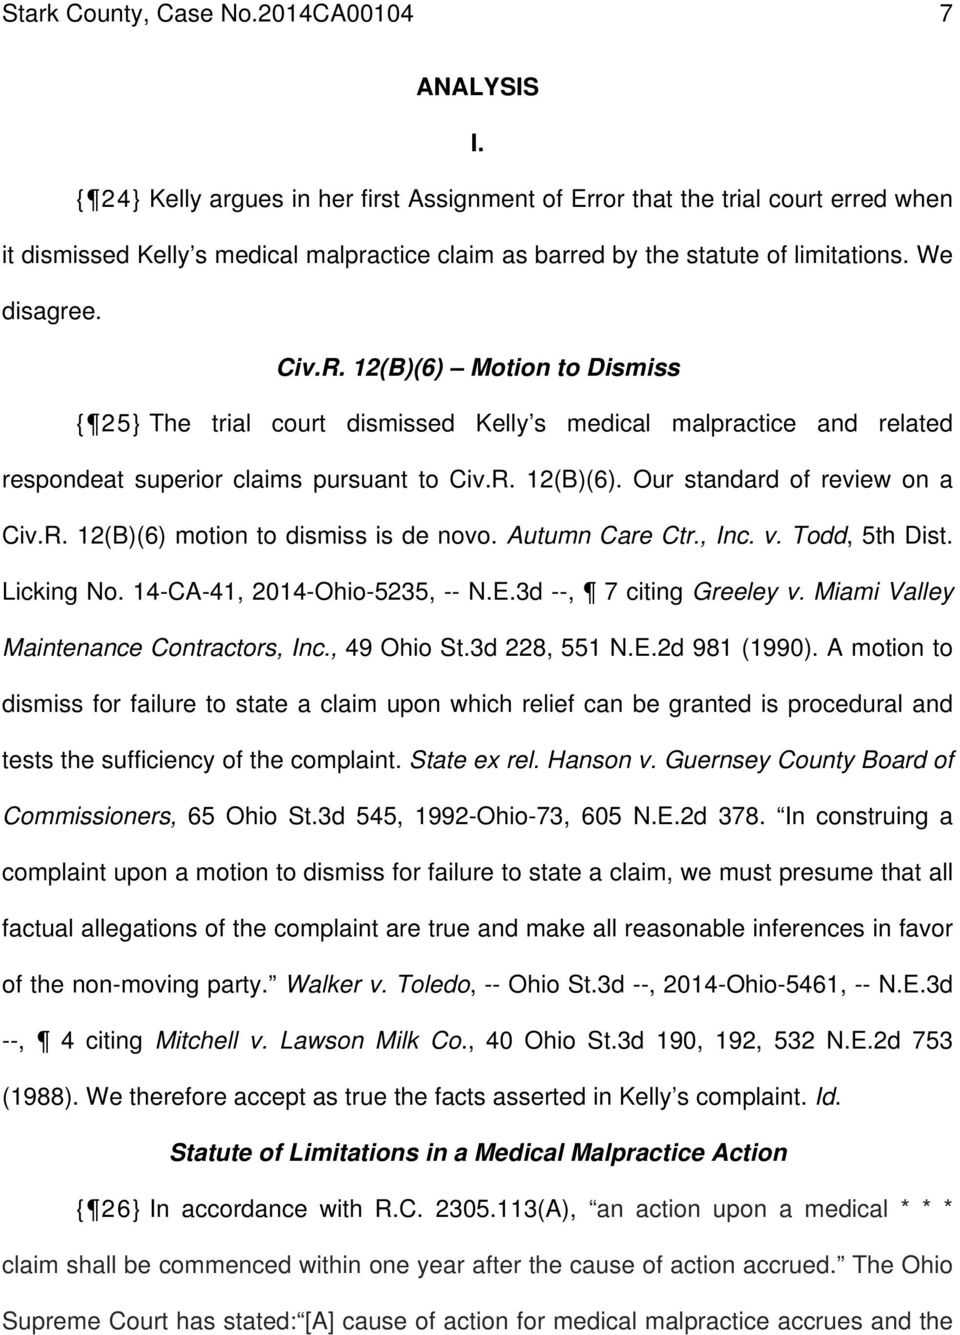 12(B)(6) Motion to Dismiss { 25} The trial court dismissed Kelly s medical malpractice and related respondeat superior claims pursuant to Civ.R. 12(B)(6). Our standard of review on a Civ.R. 12(B)(6) motion to dismiss is de novo.